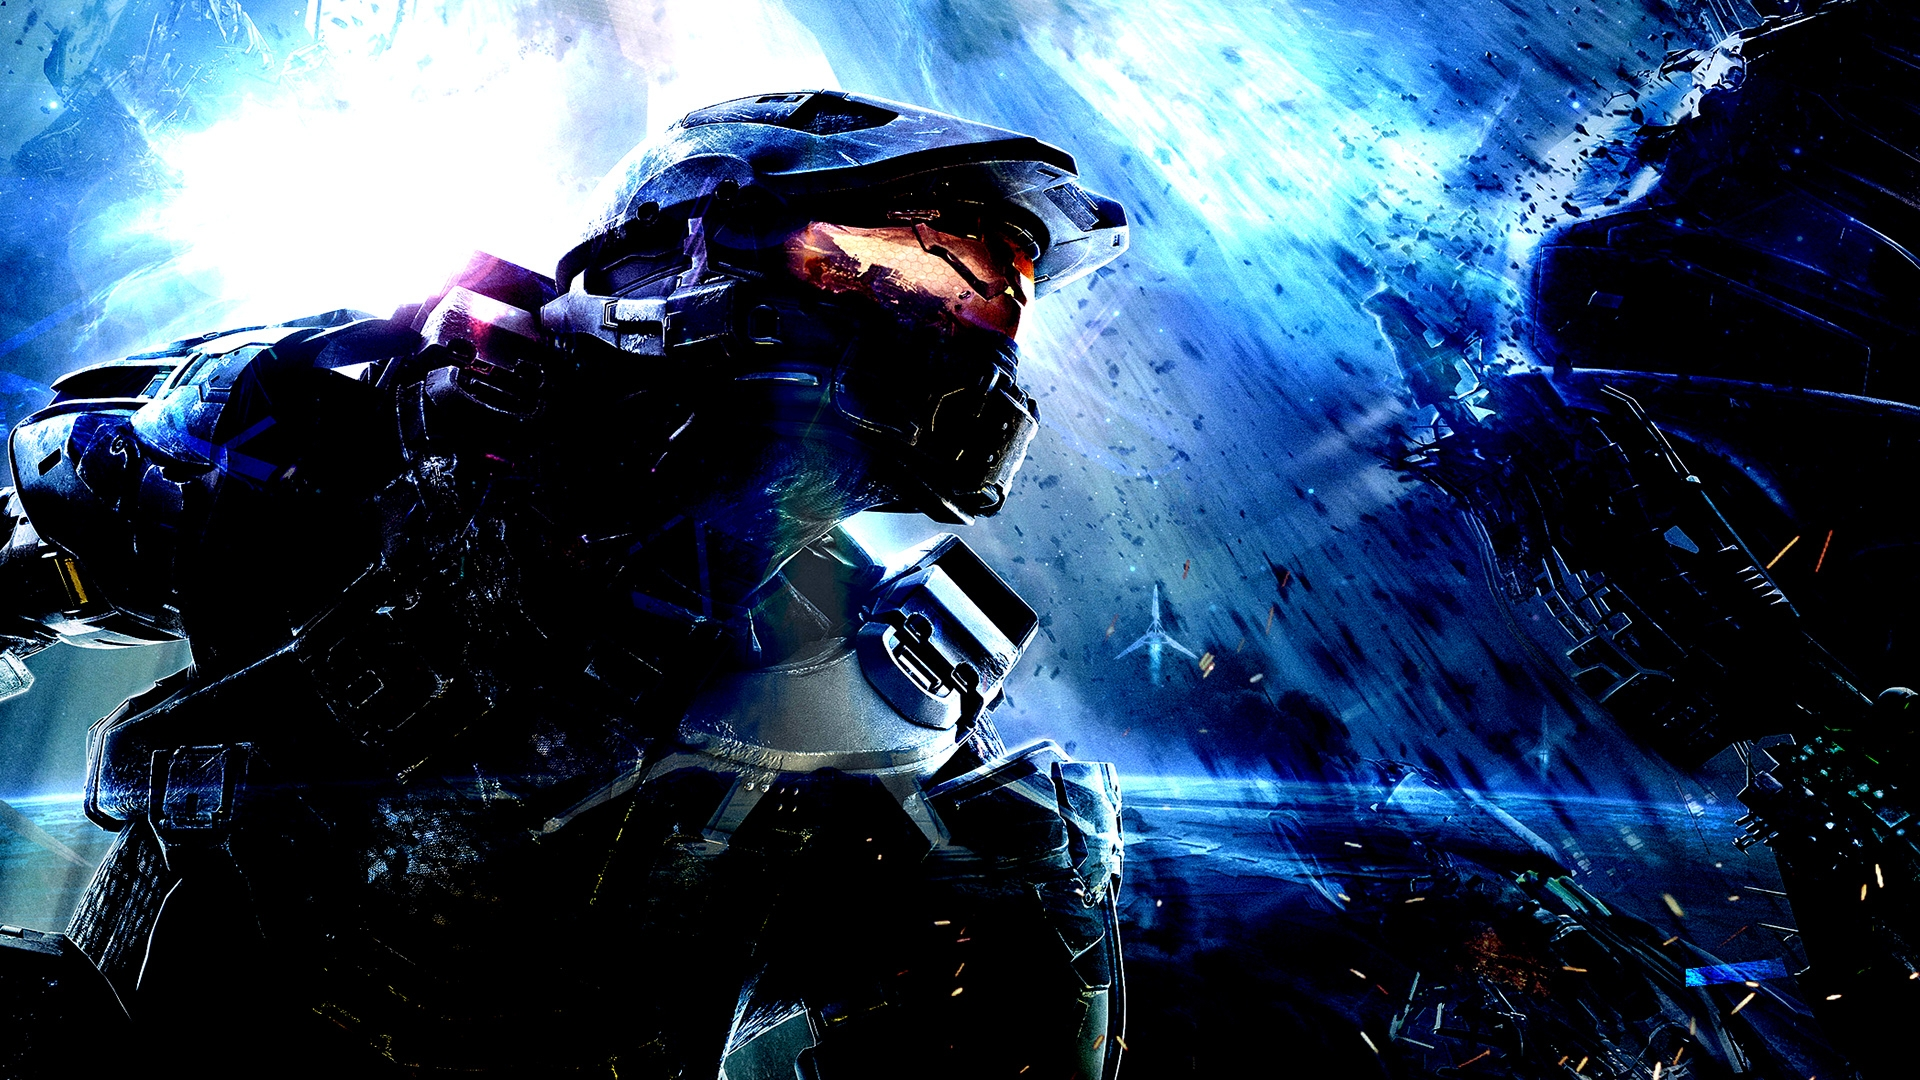 Halo 4 Anyone? A Collection of Halo 4 Wall Papers | C Town ...